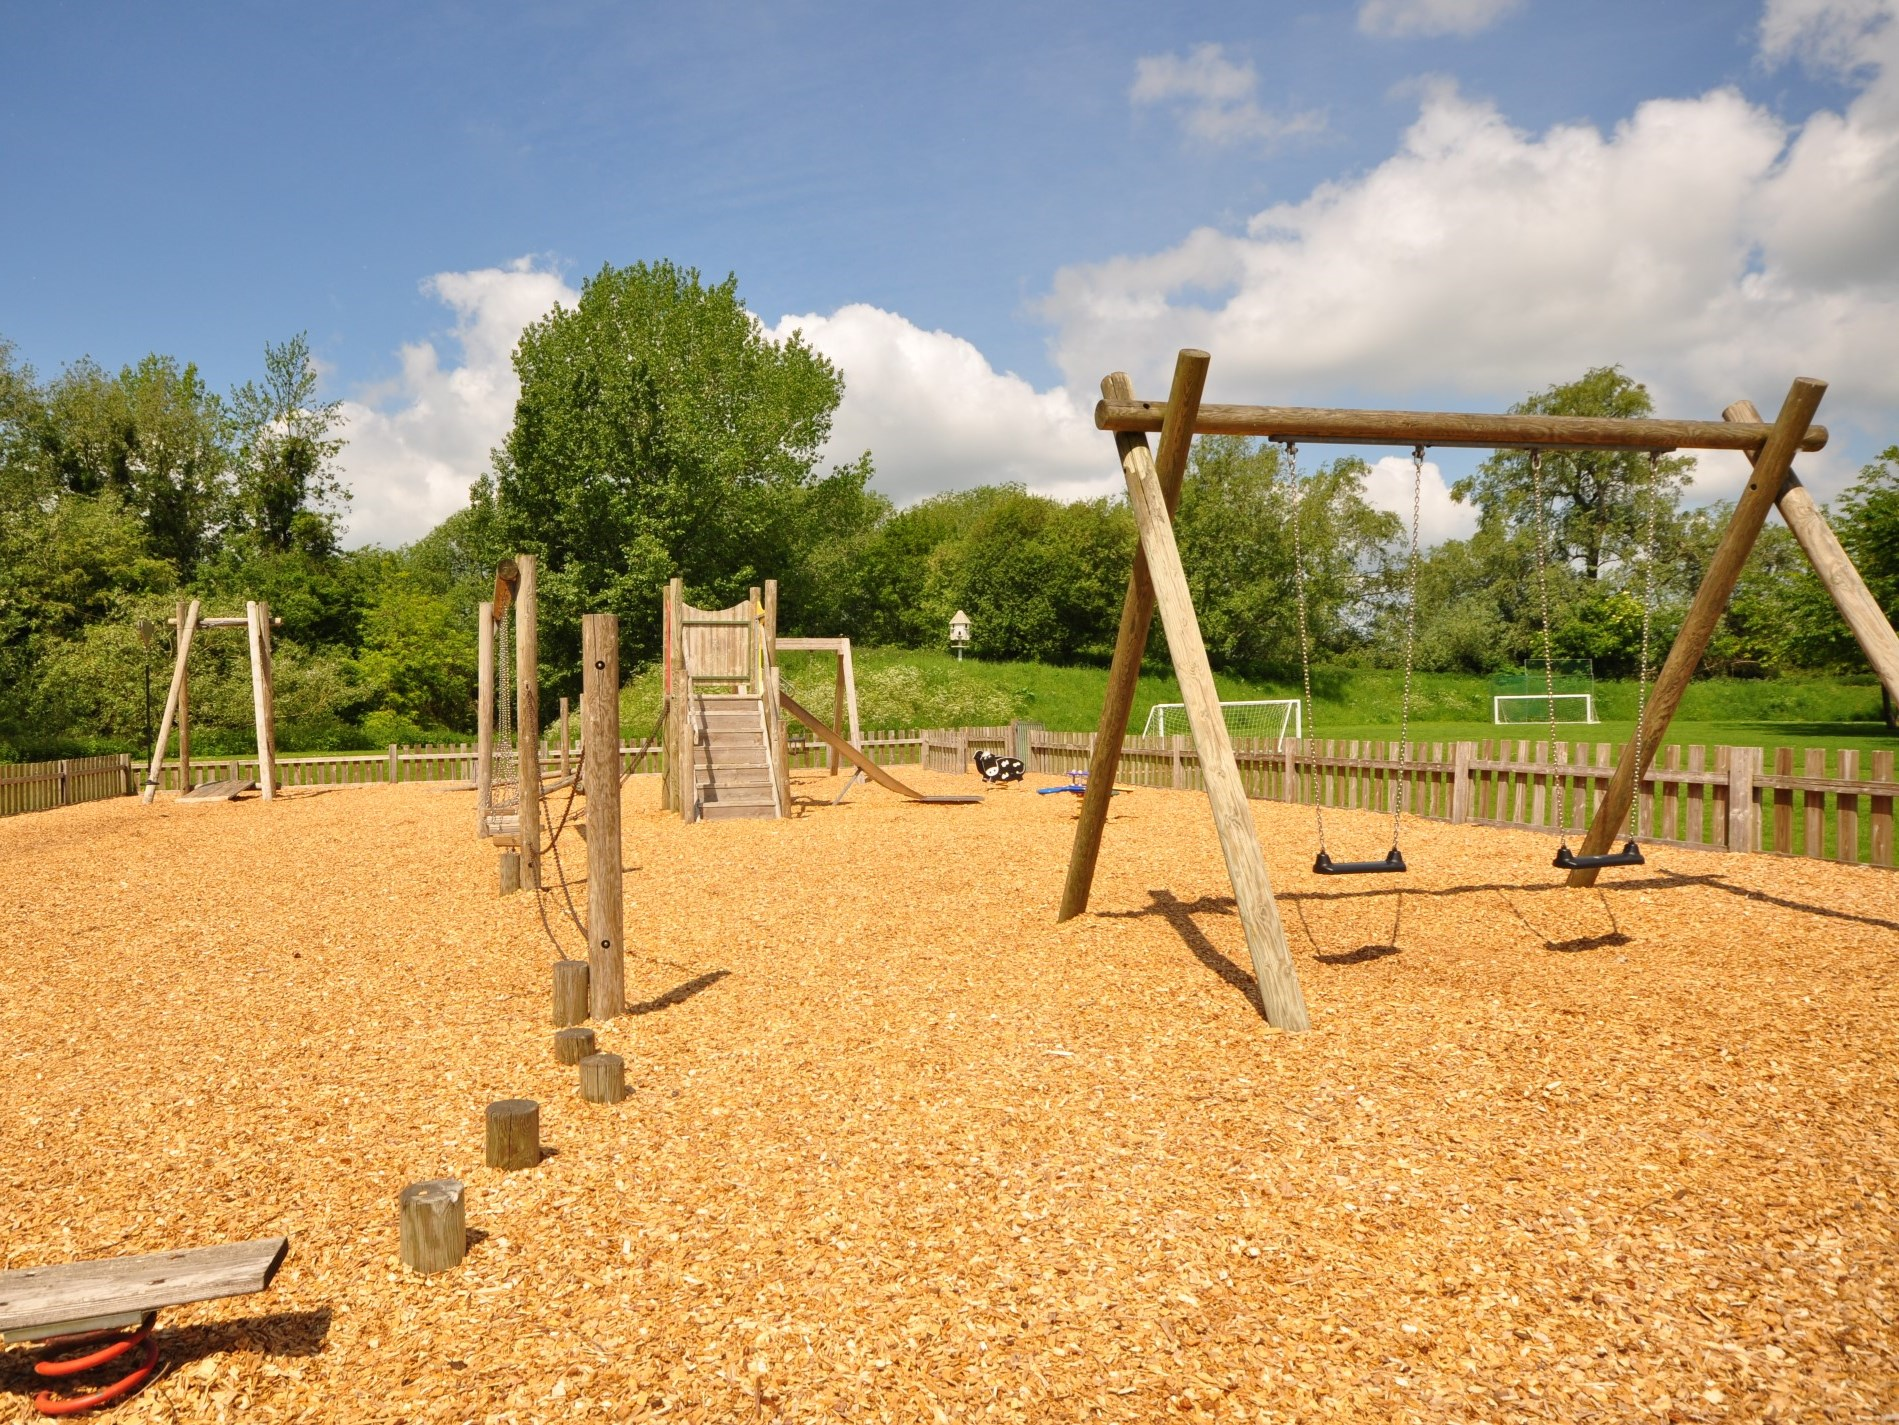 A great adventure playground